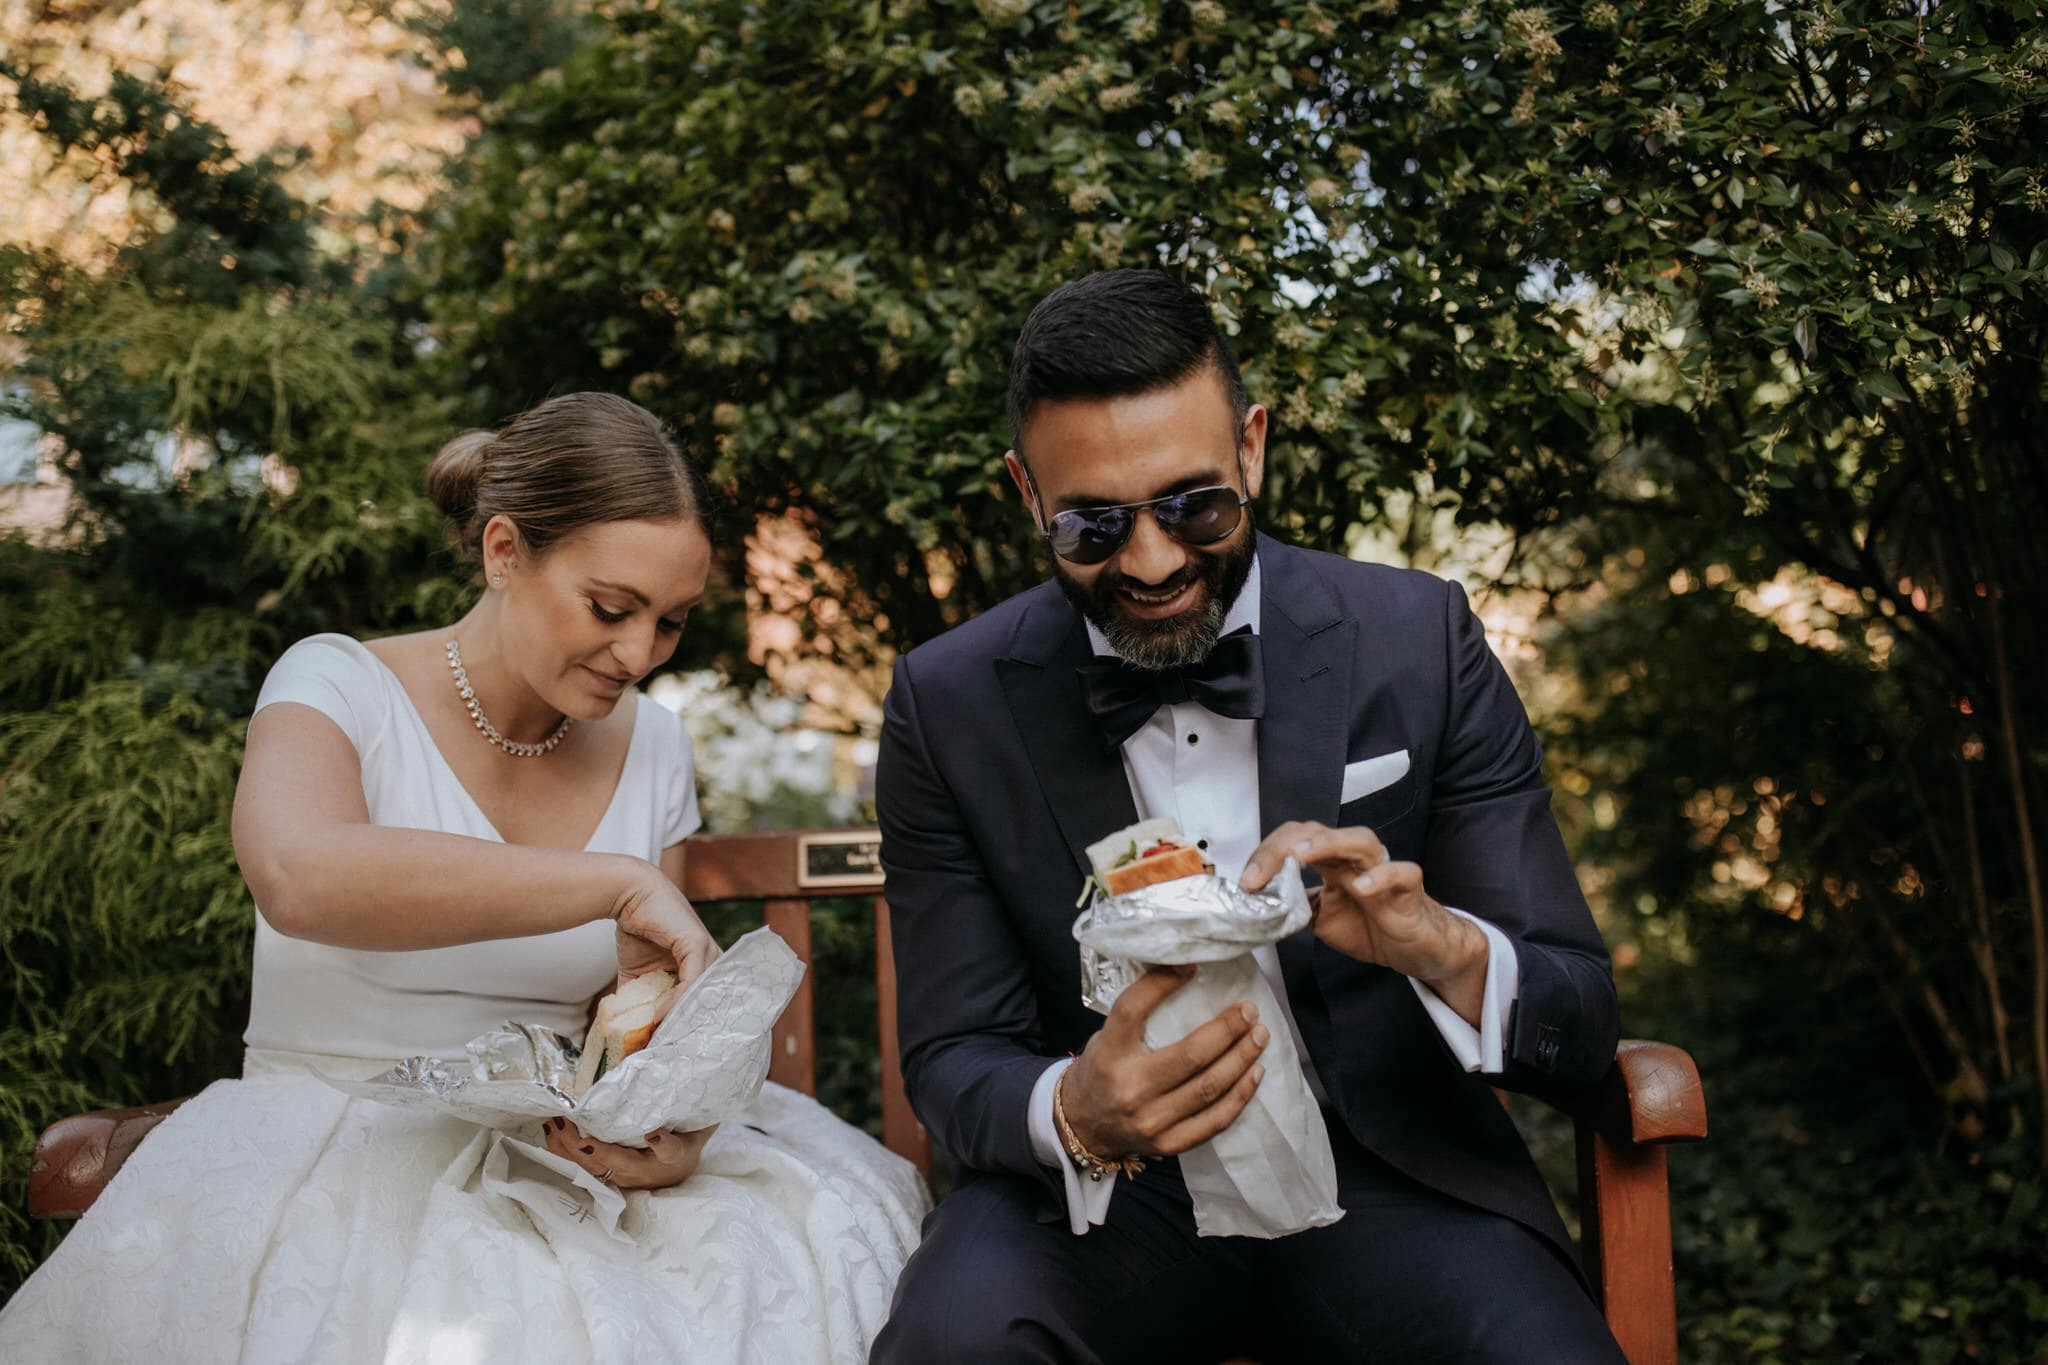 The bride and groom enjoy sandwiches from New York city's Sanpanino Sandwich Shop. Wedding Photographer Brent Calis.